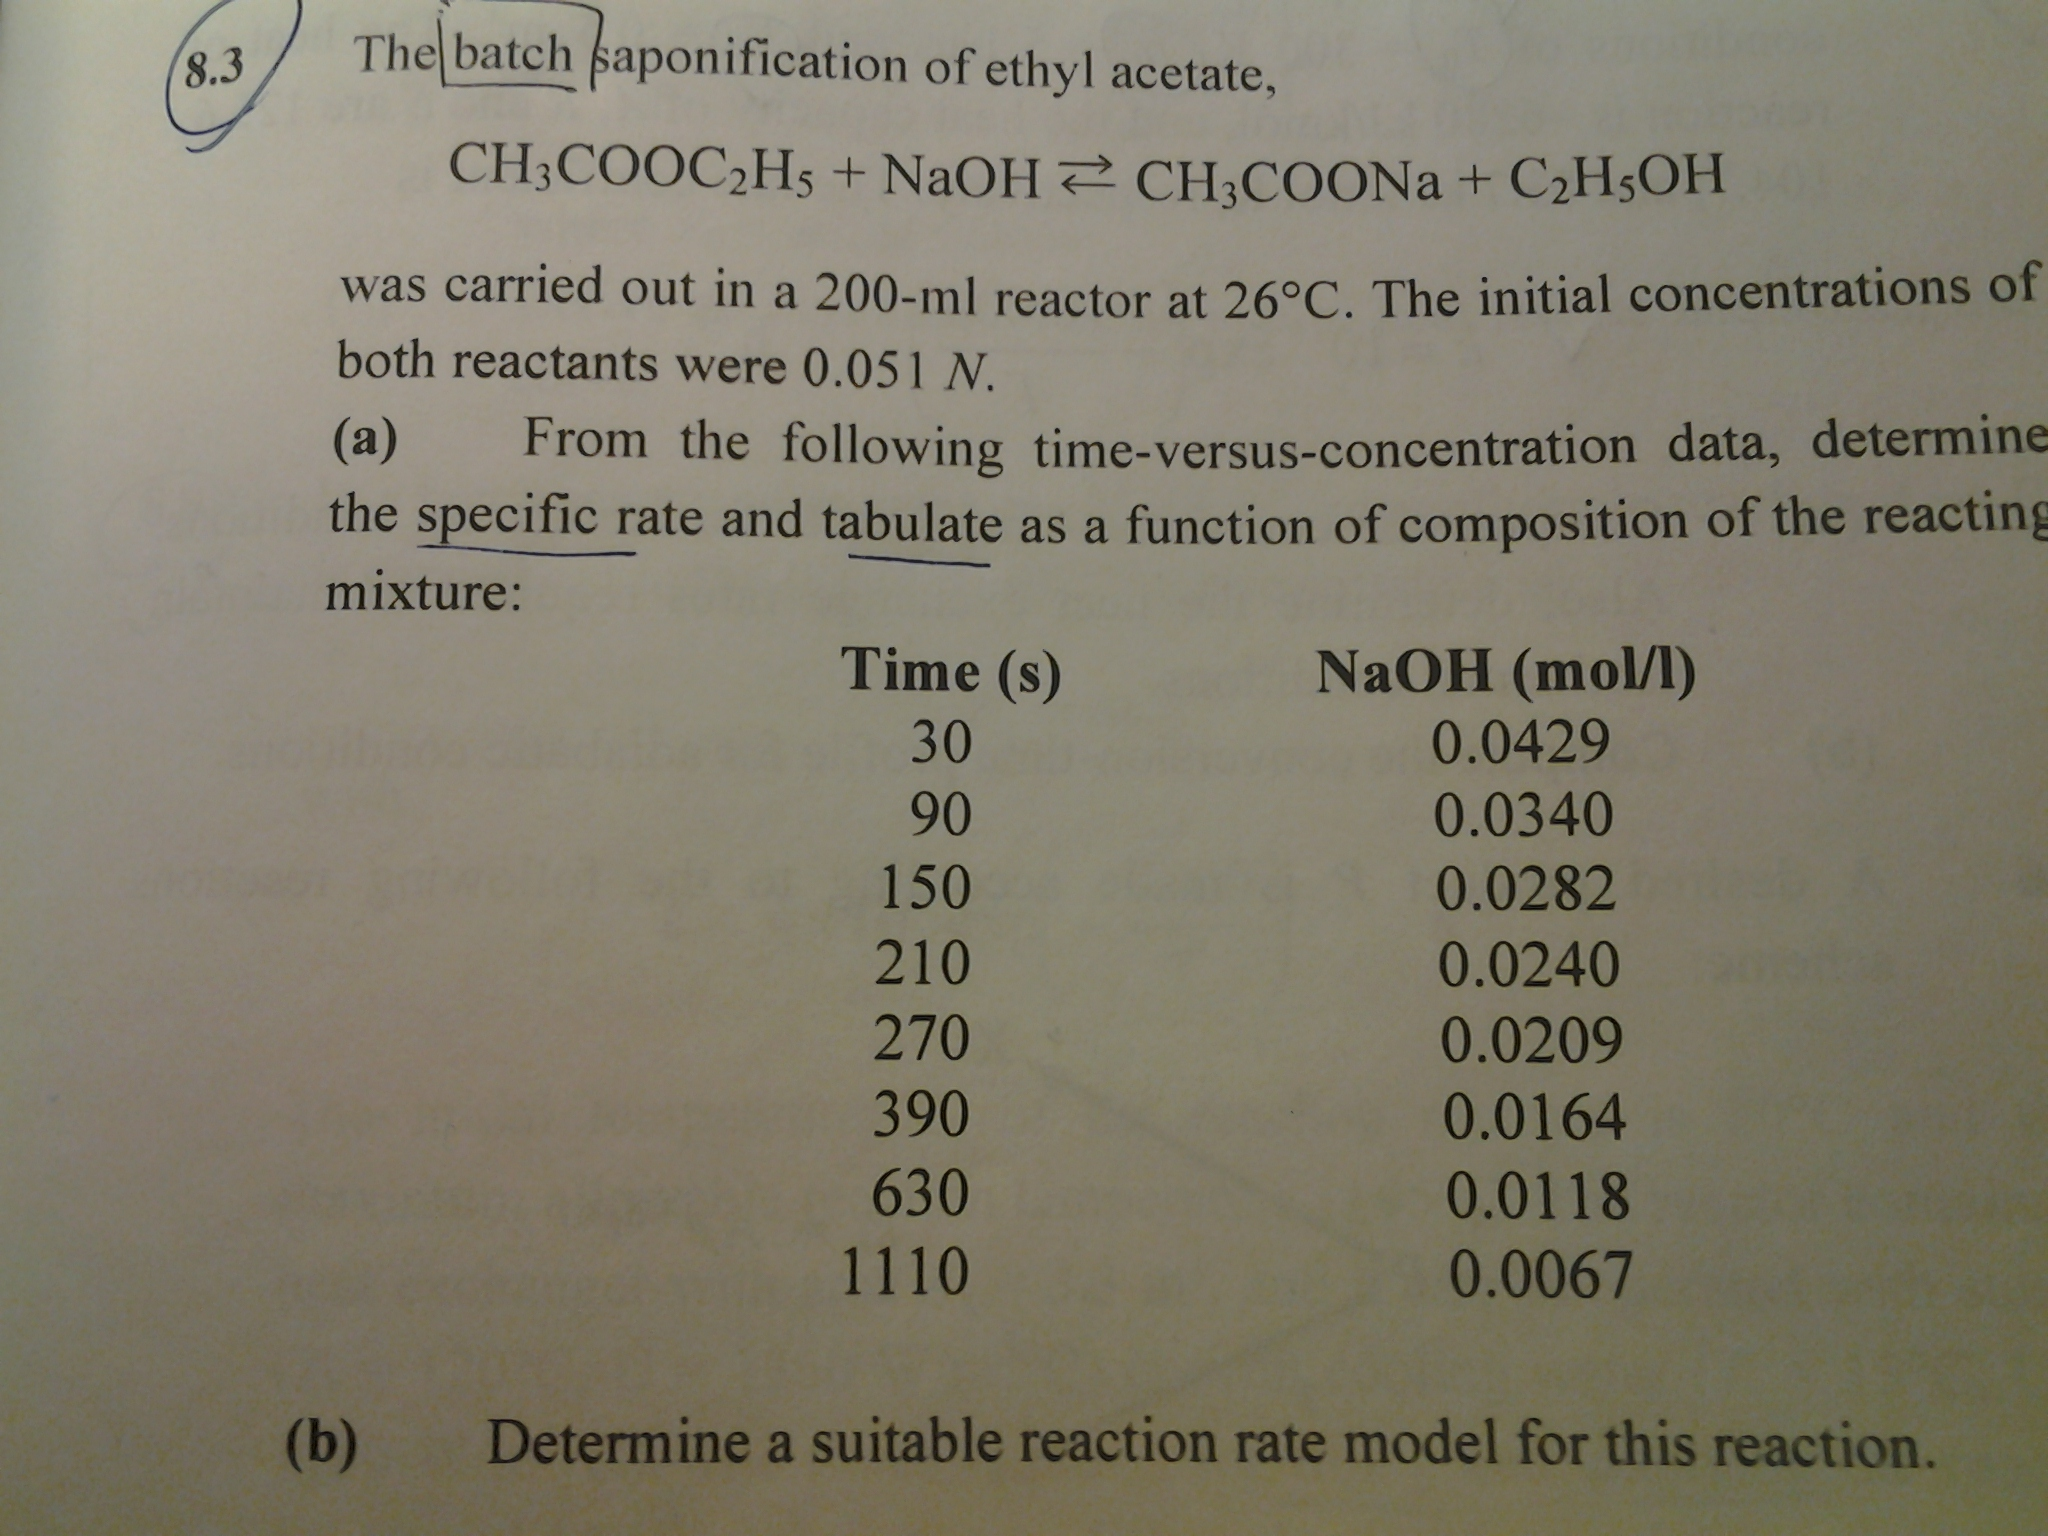 The batch saponification of ethyl acetate, CH3COOC